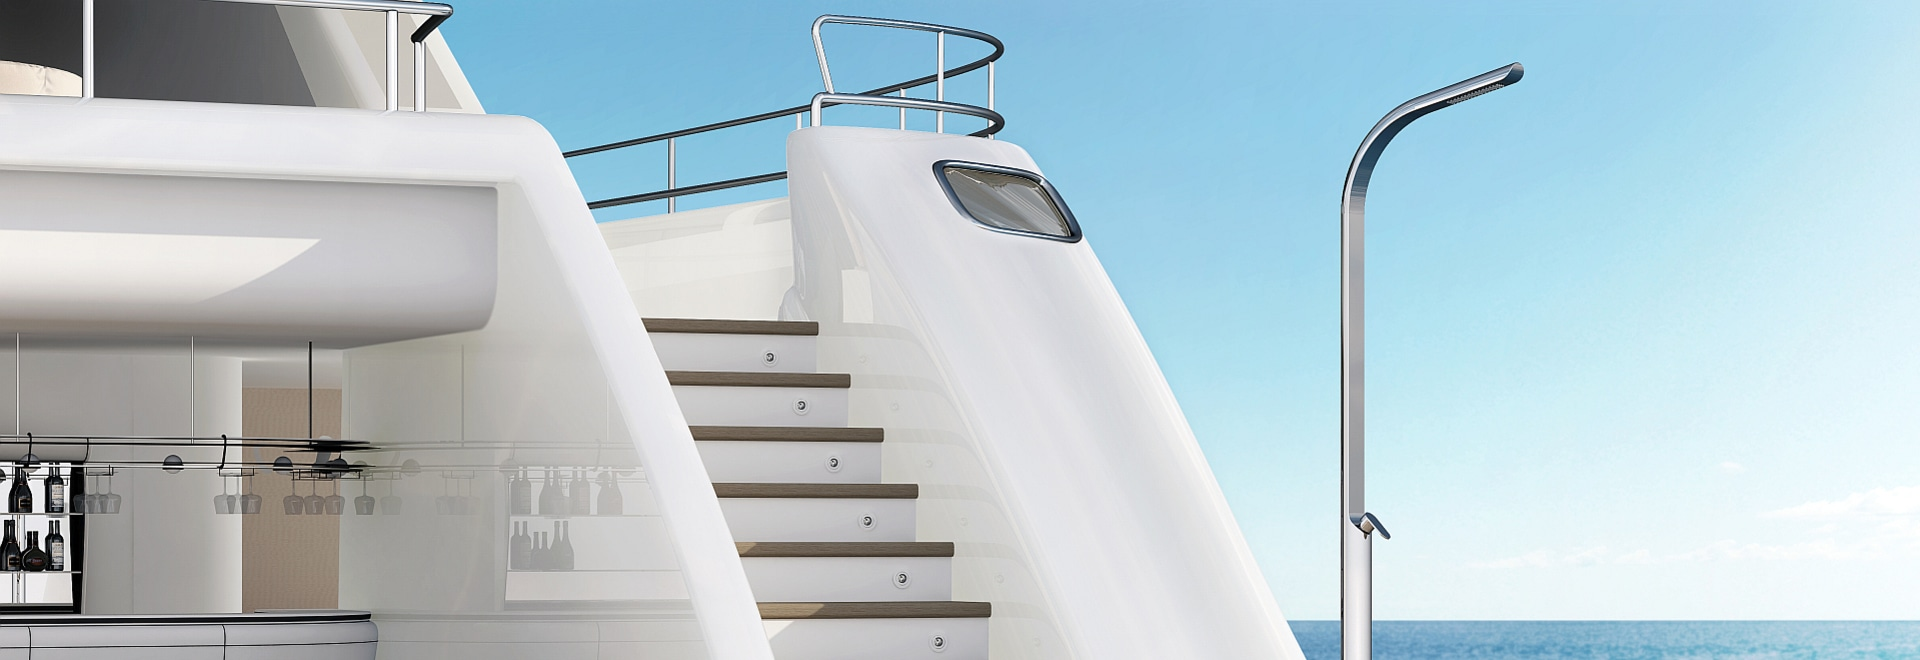 Dream Yacht - Stainless steel shower for yacht